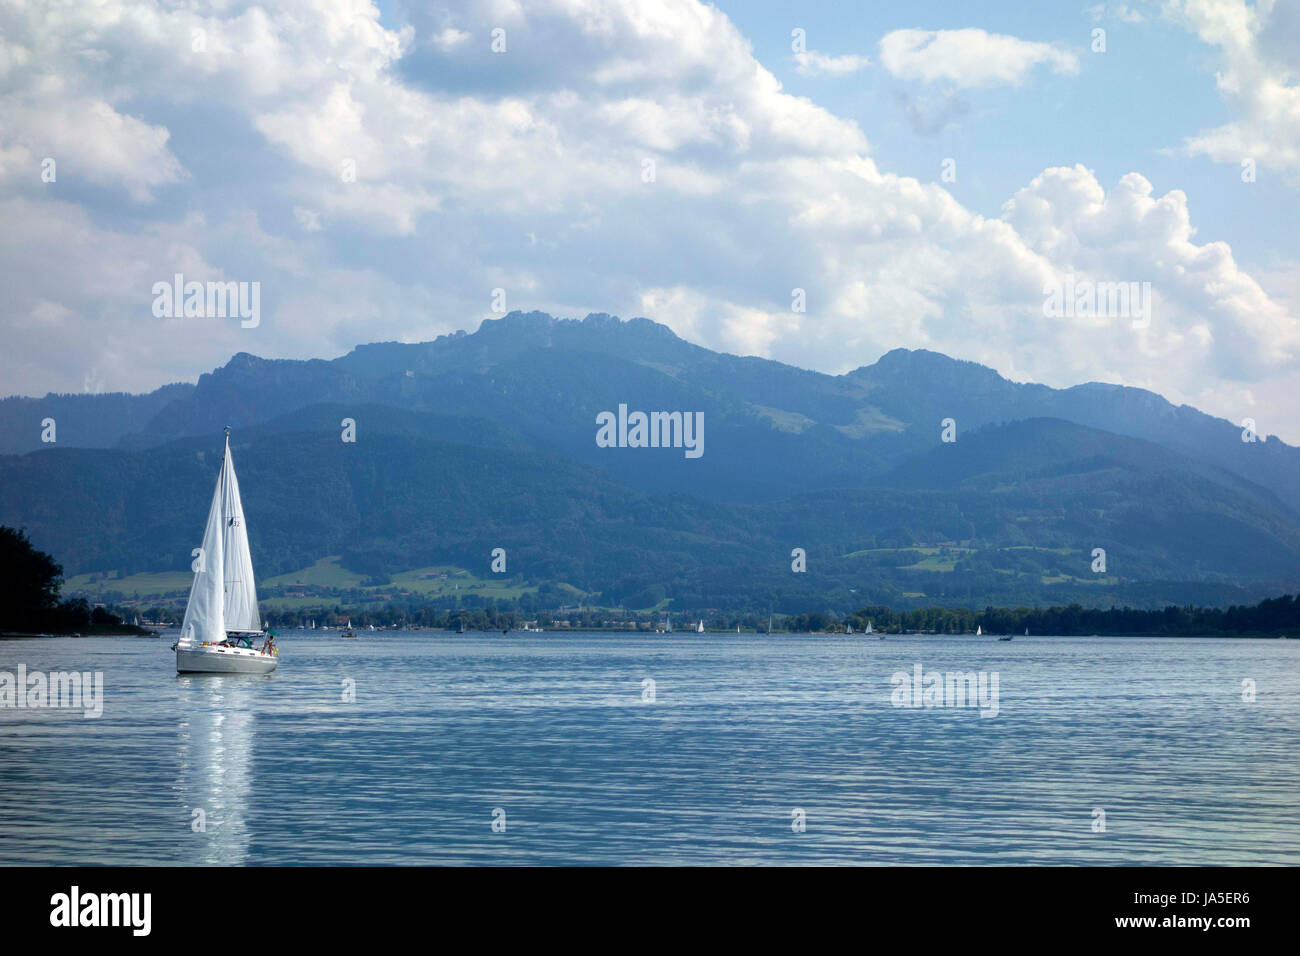 Small sail boat on lake,  with Bavarian alps in background, Chiemsee Upper Bavaria Germany Stock Photo